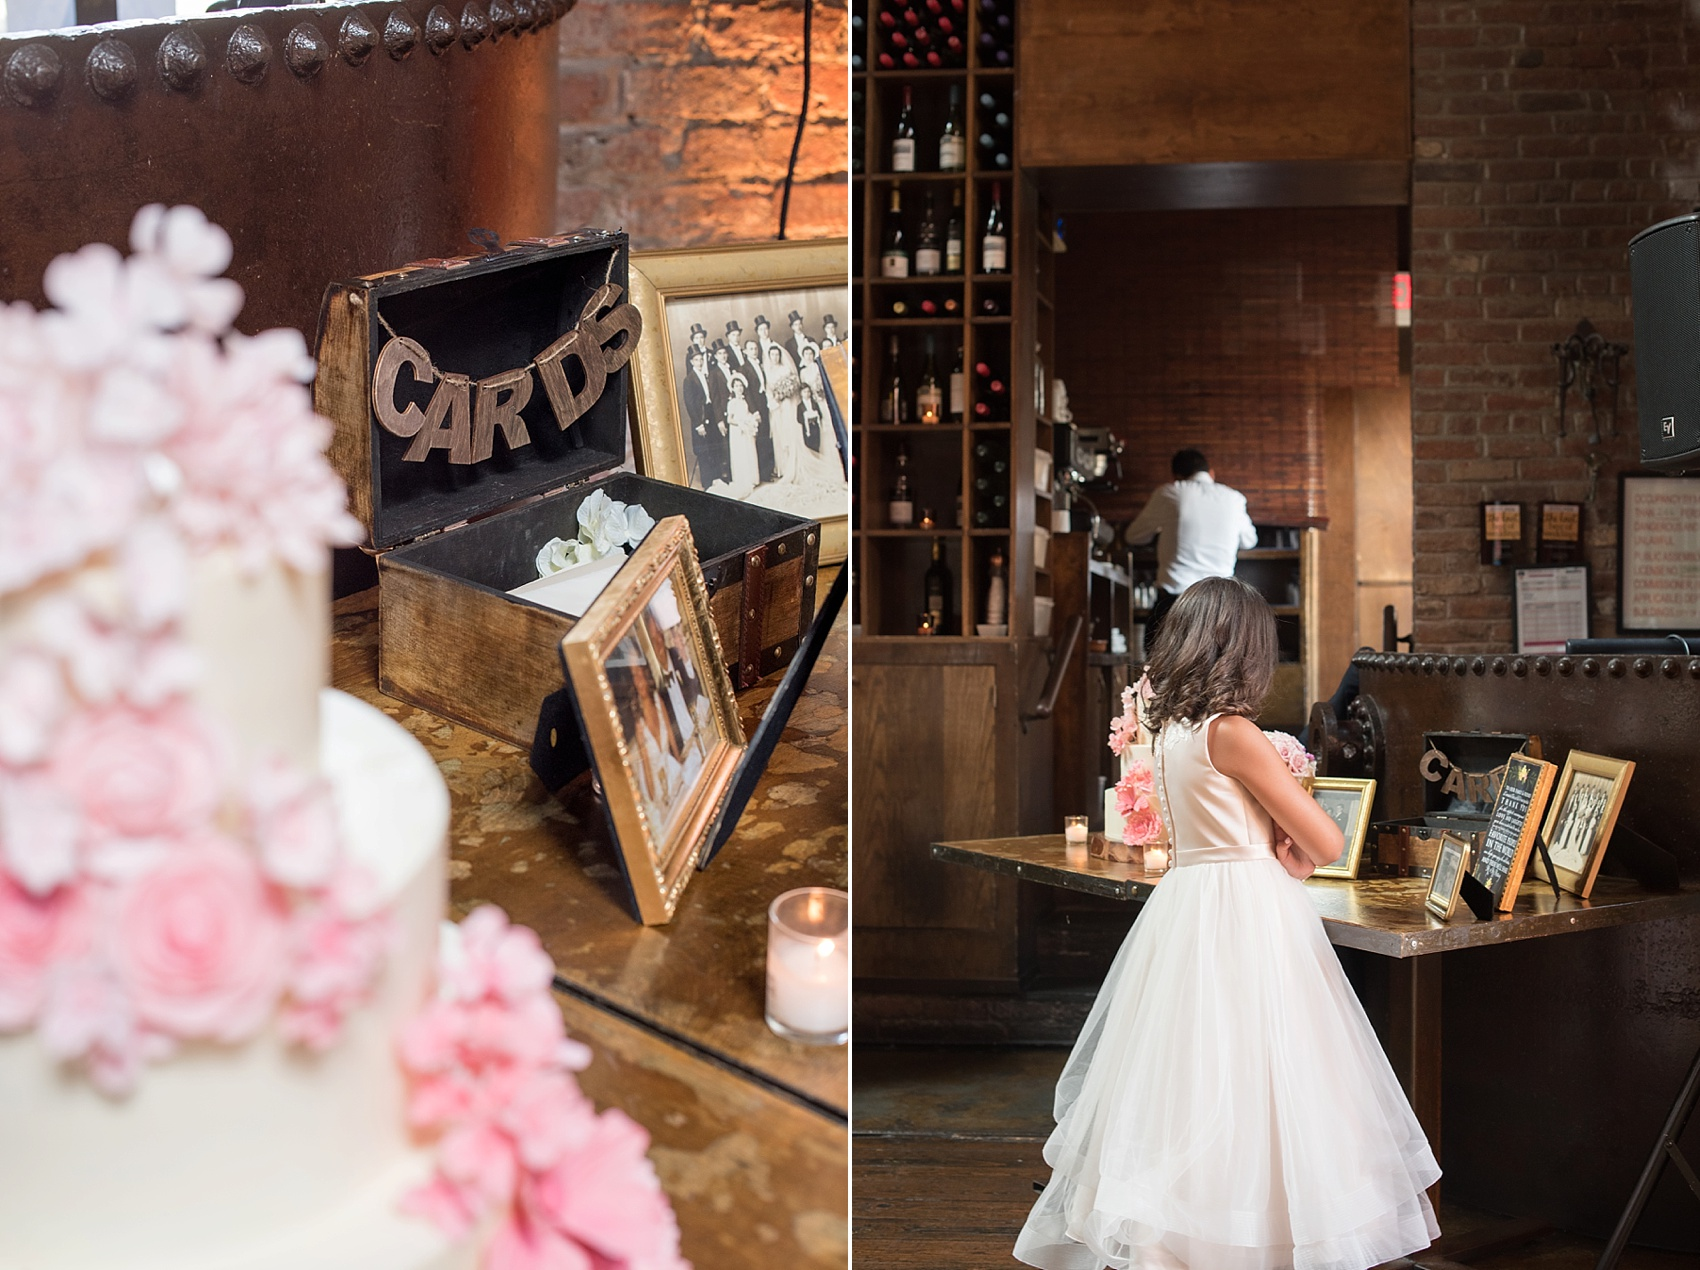 Rustic romantic card box at My Moon Brooklyn, Williamsburg NYC, intimate wedding. Photos by Mikkel Paige Photography.